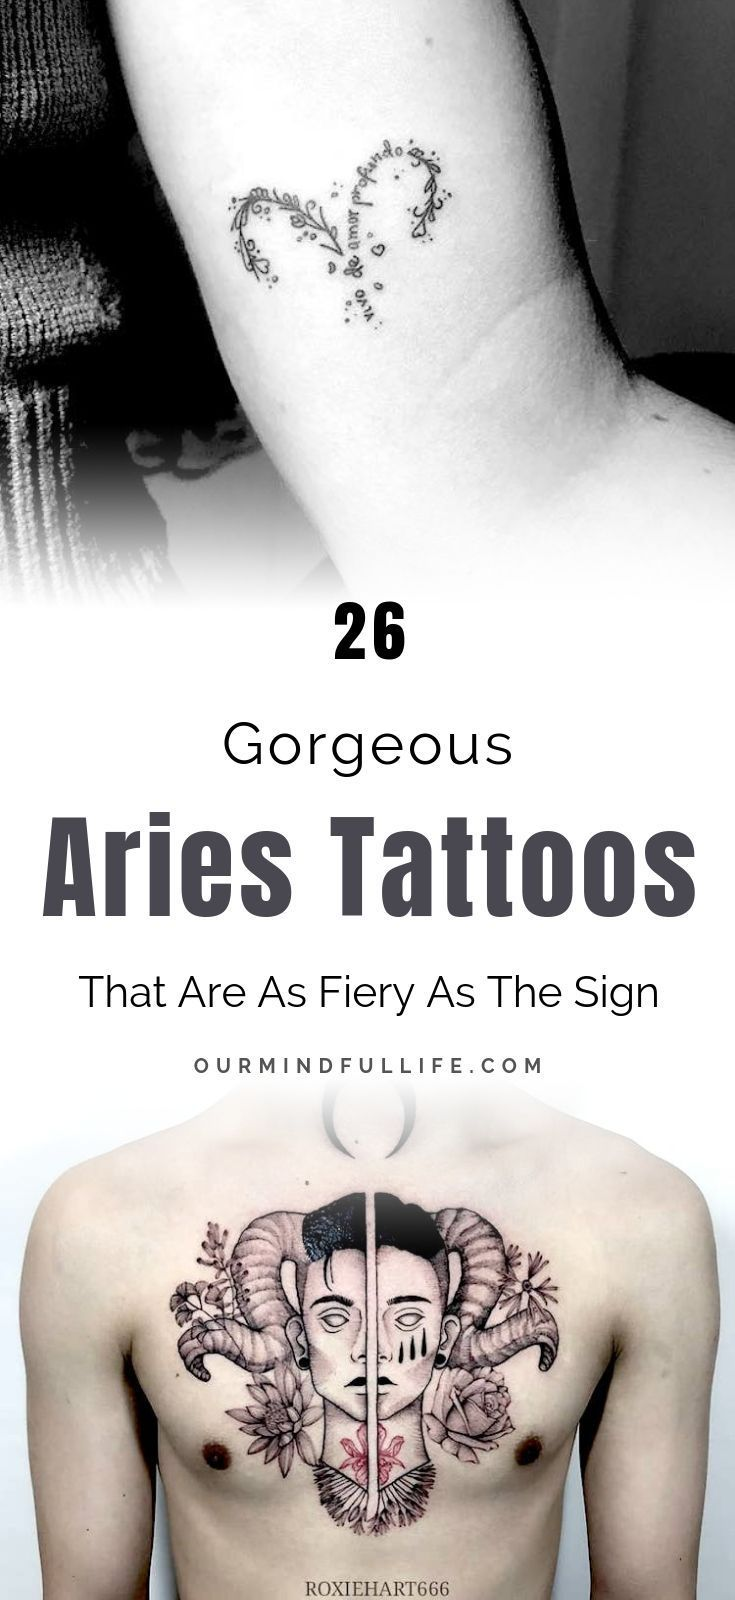 31 Aries Tattoos That Are As Fiery As You Are Tattoos